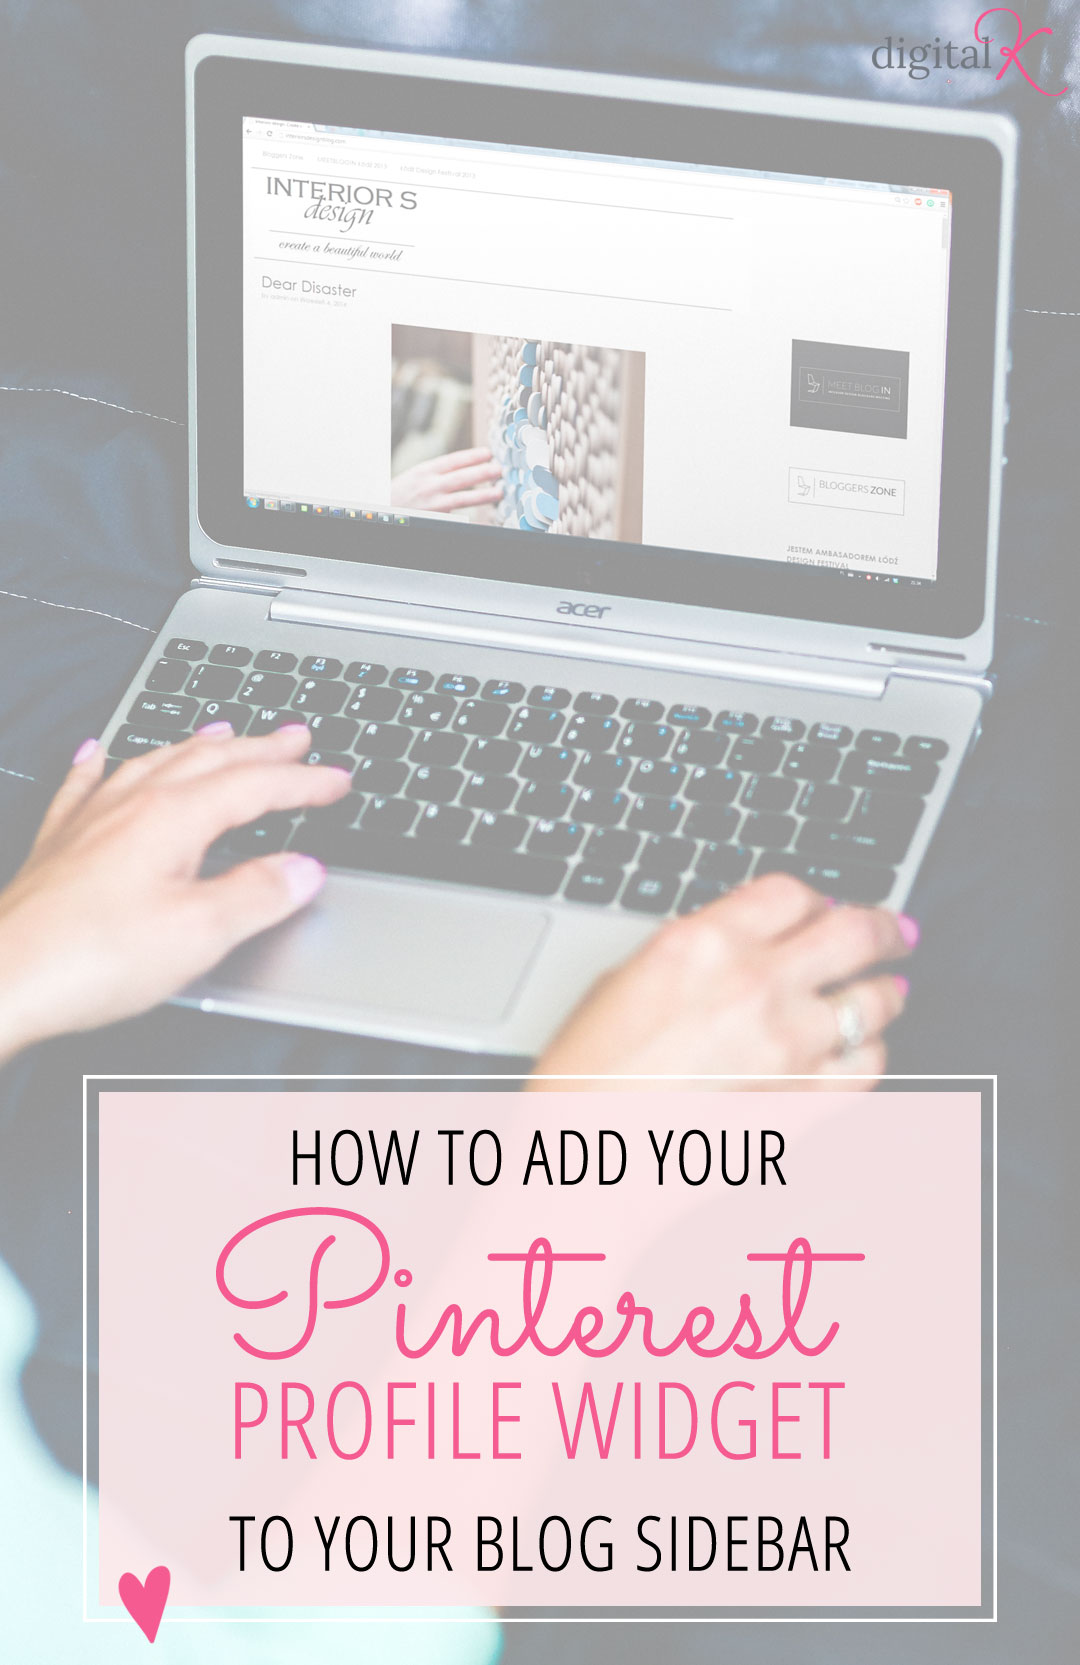 How to add your Pinterest Profile Widget to your Blog's Sidebar. Includes instructions for both Wordpress and Blogger!